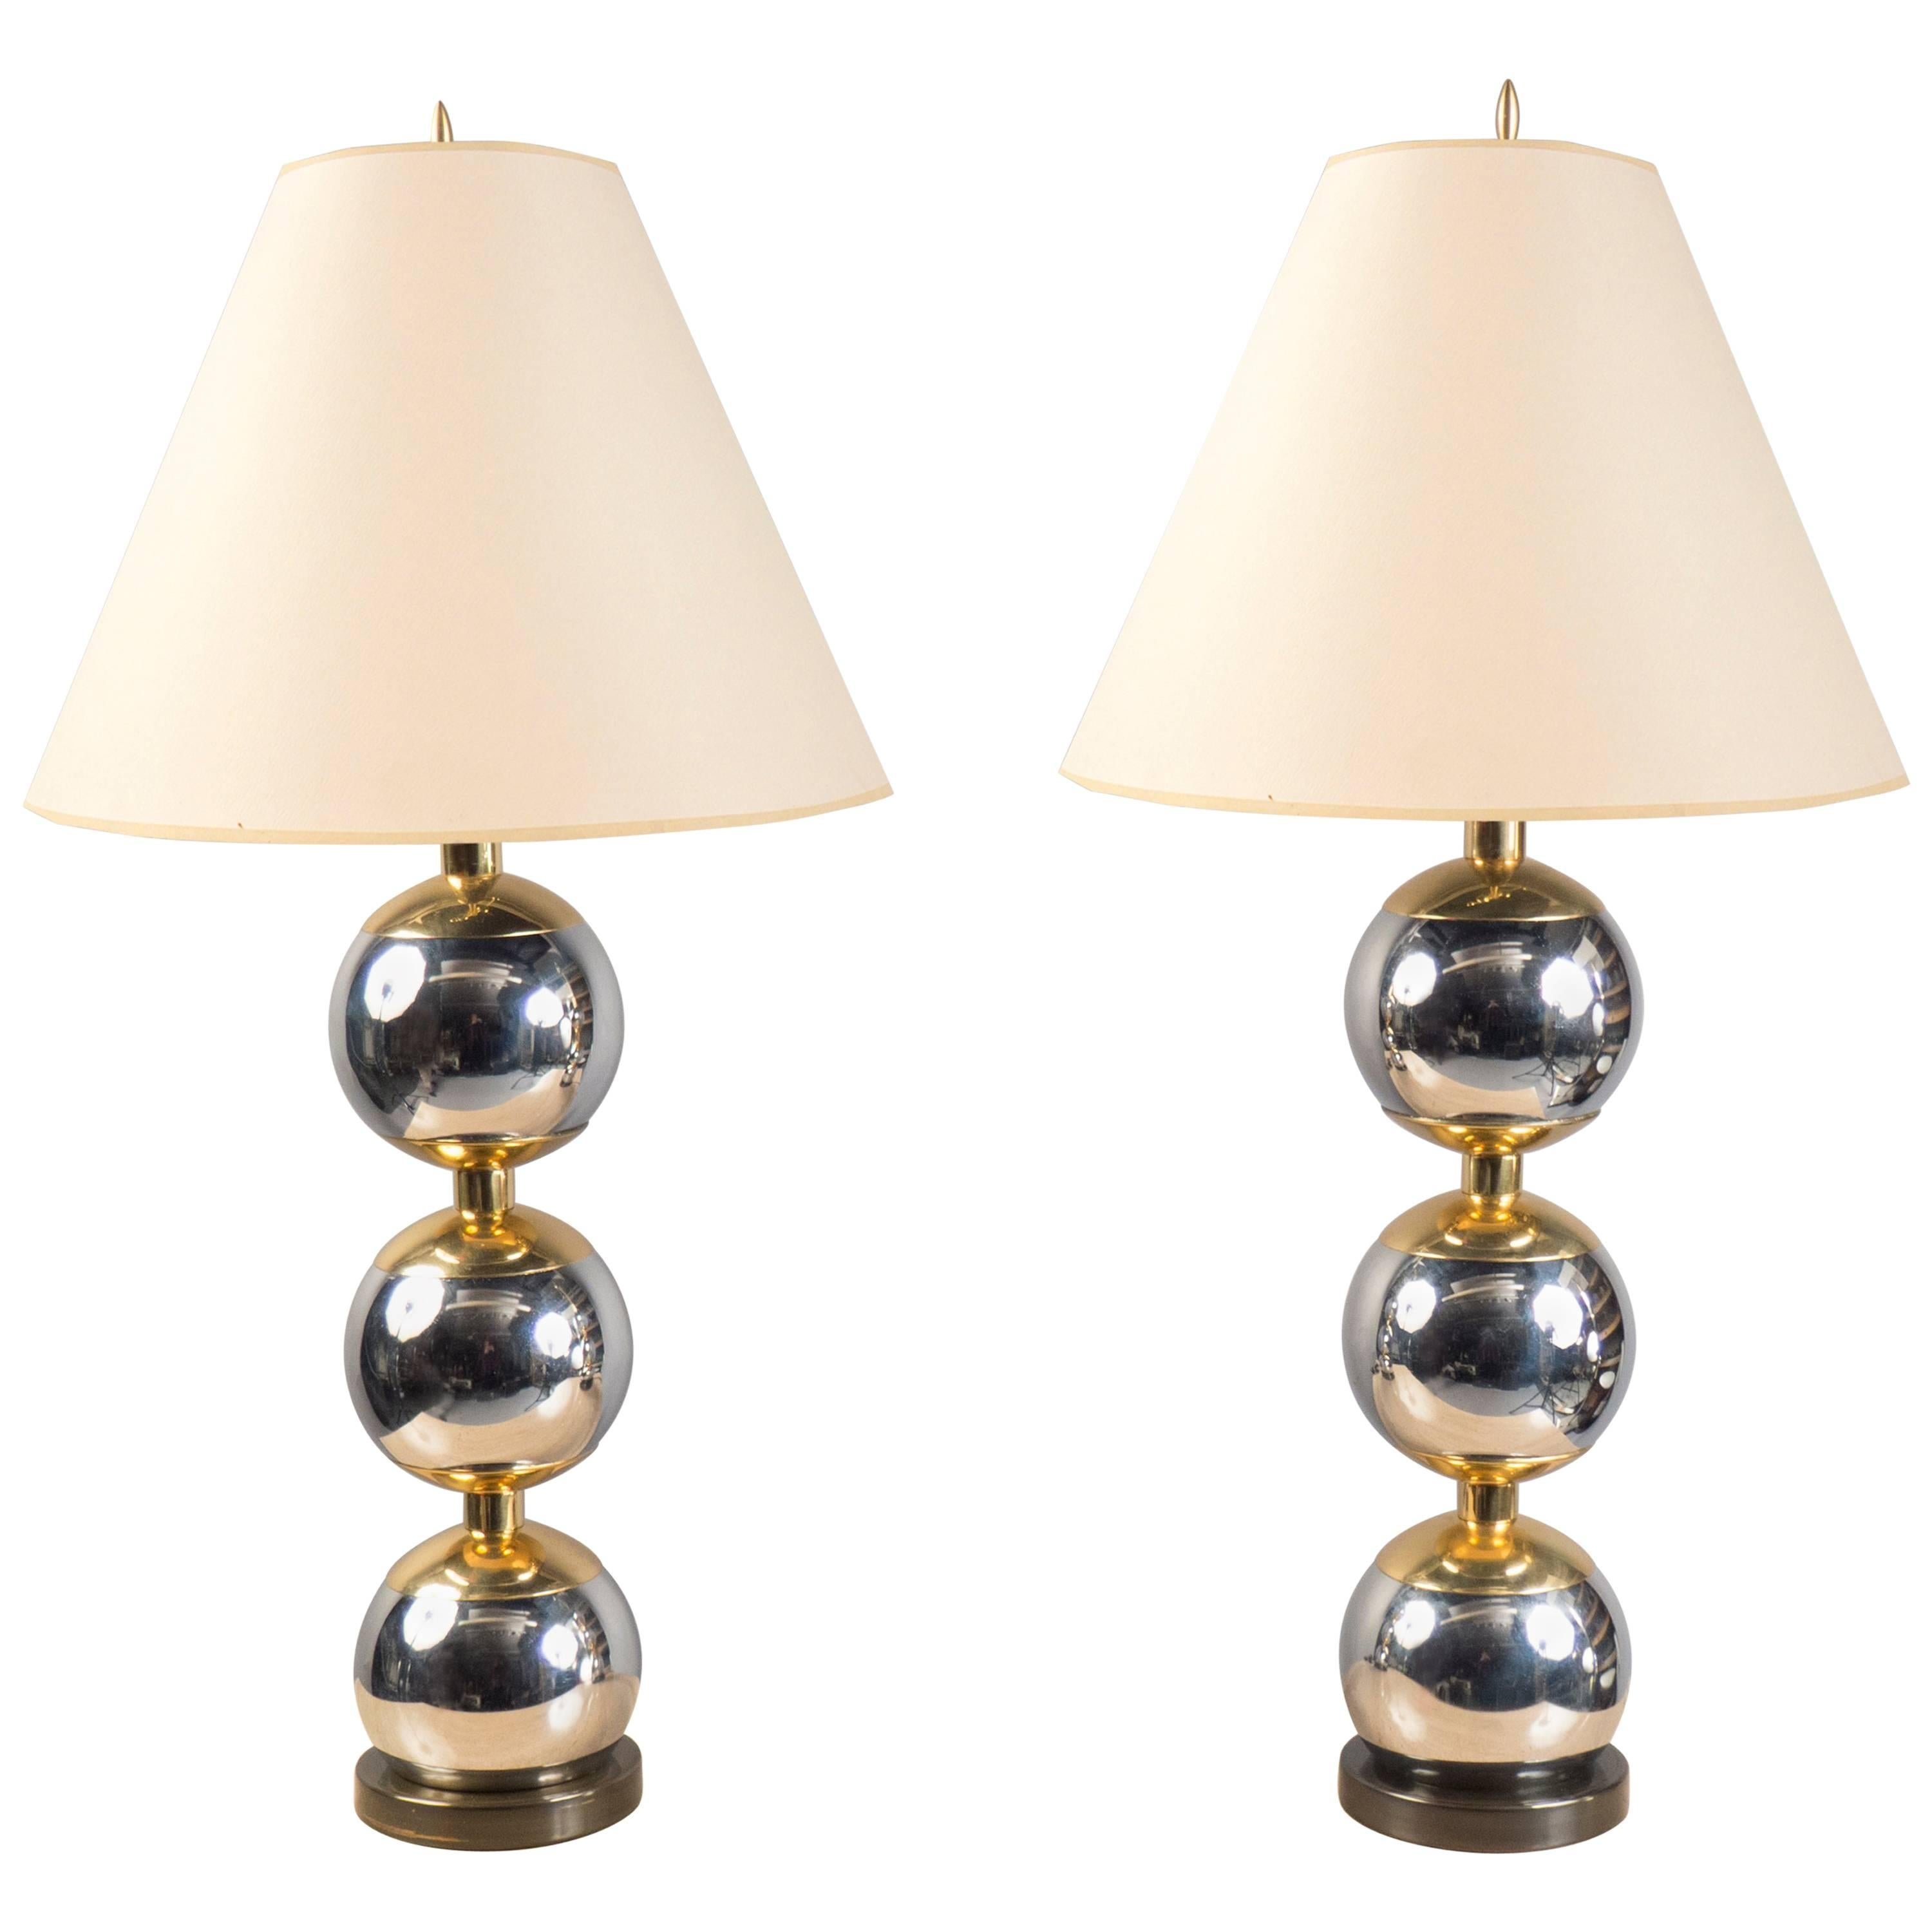 Pair of Lamps, France, 1970s